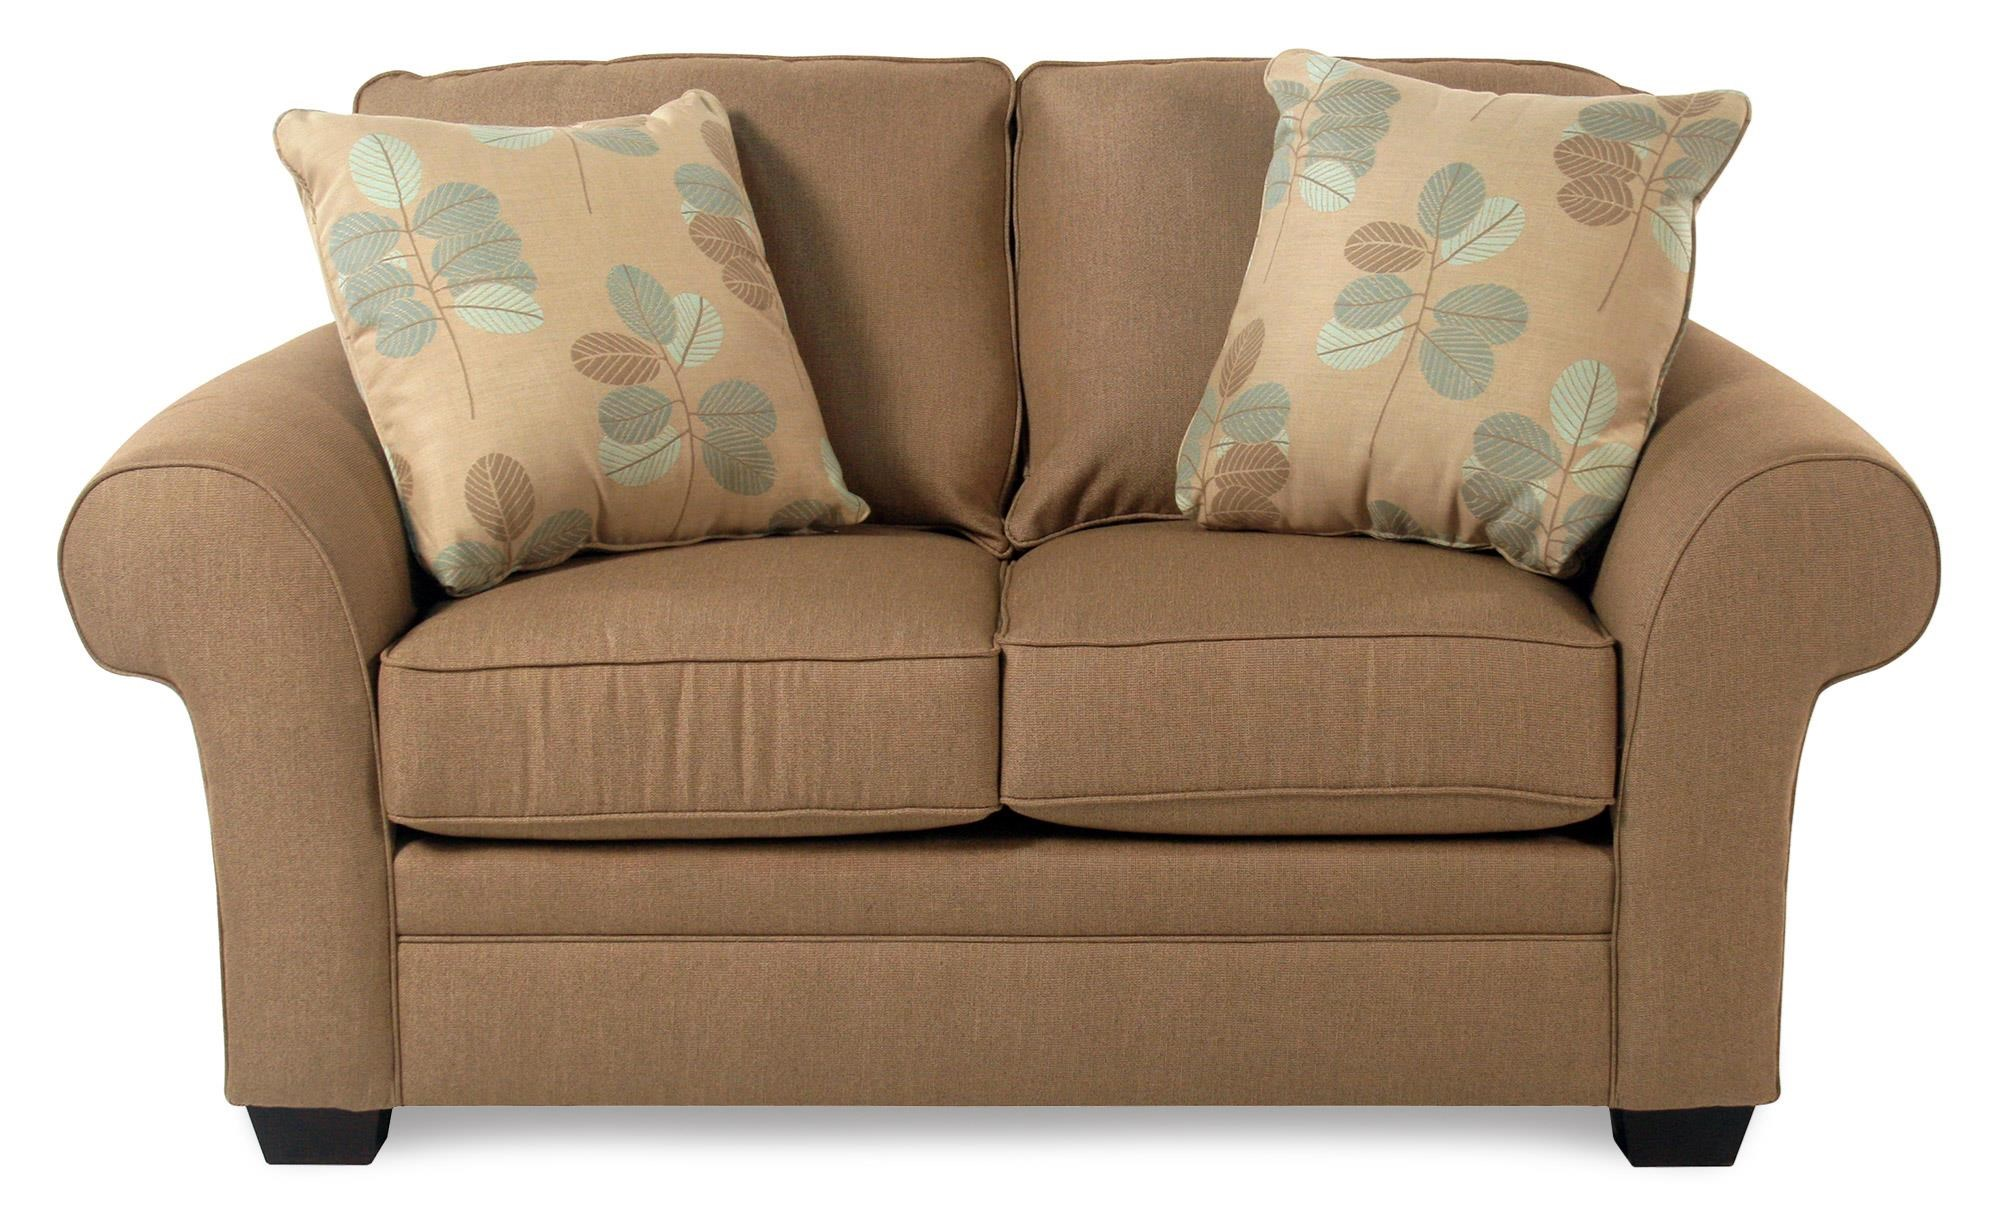 Broyhill Furniture Lagoona Roll Arm Loveseat - Item Number: S7902-1-44282-0008